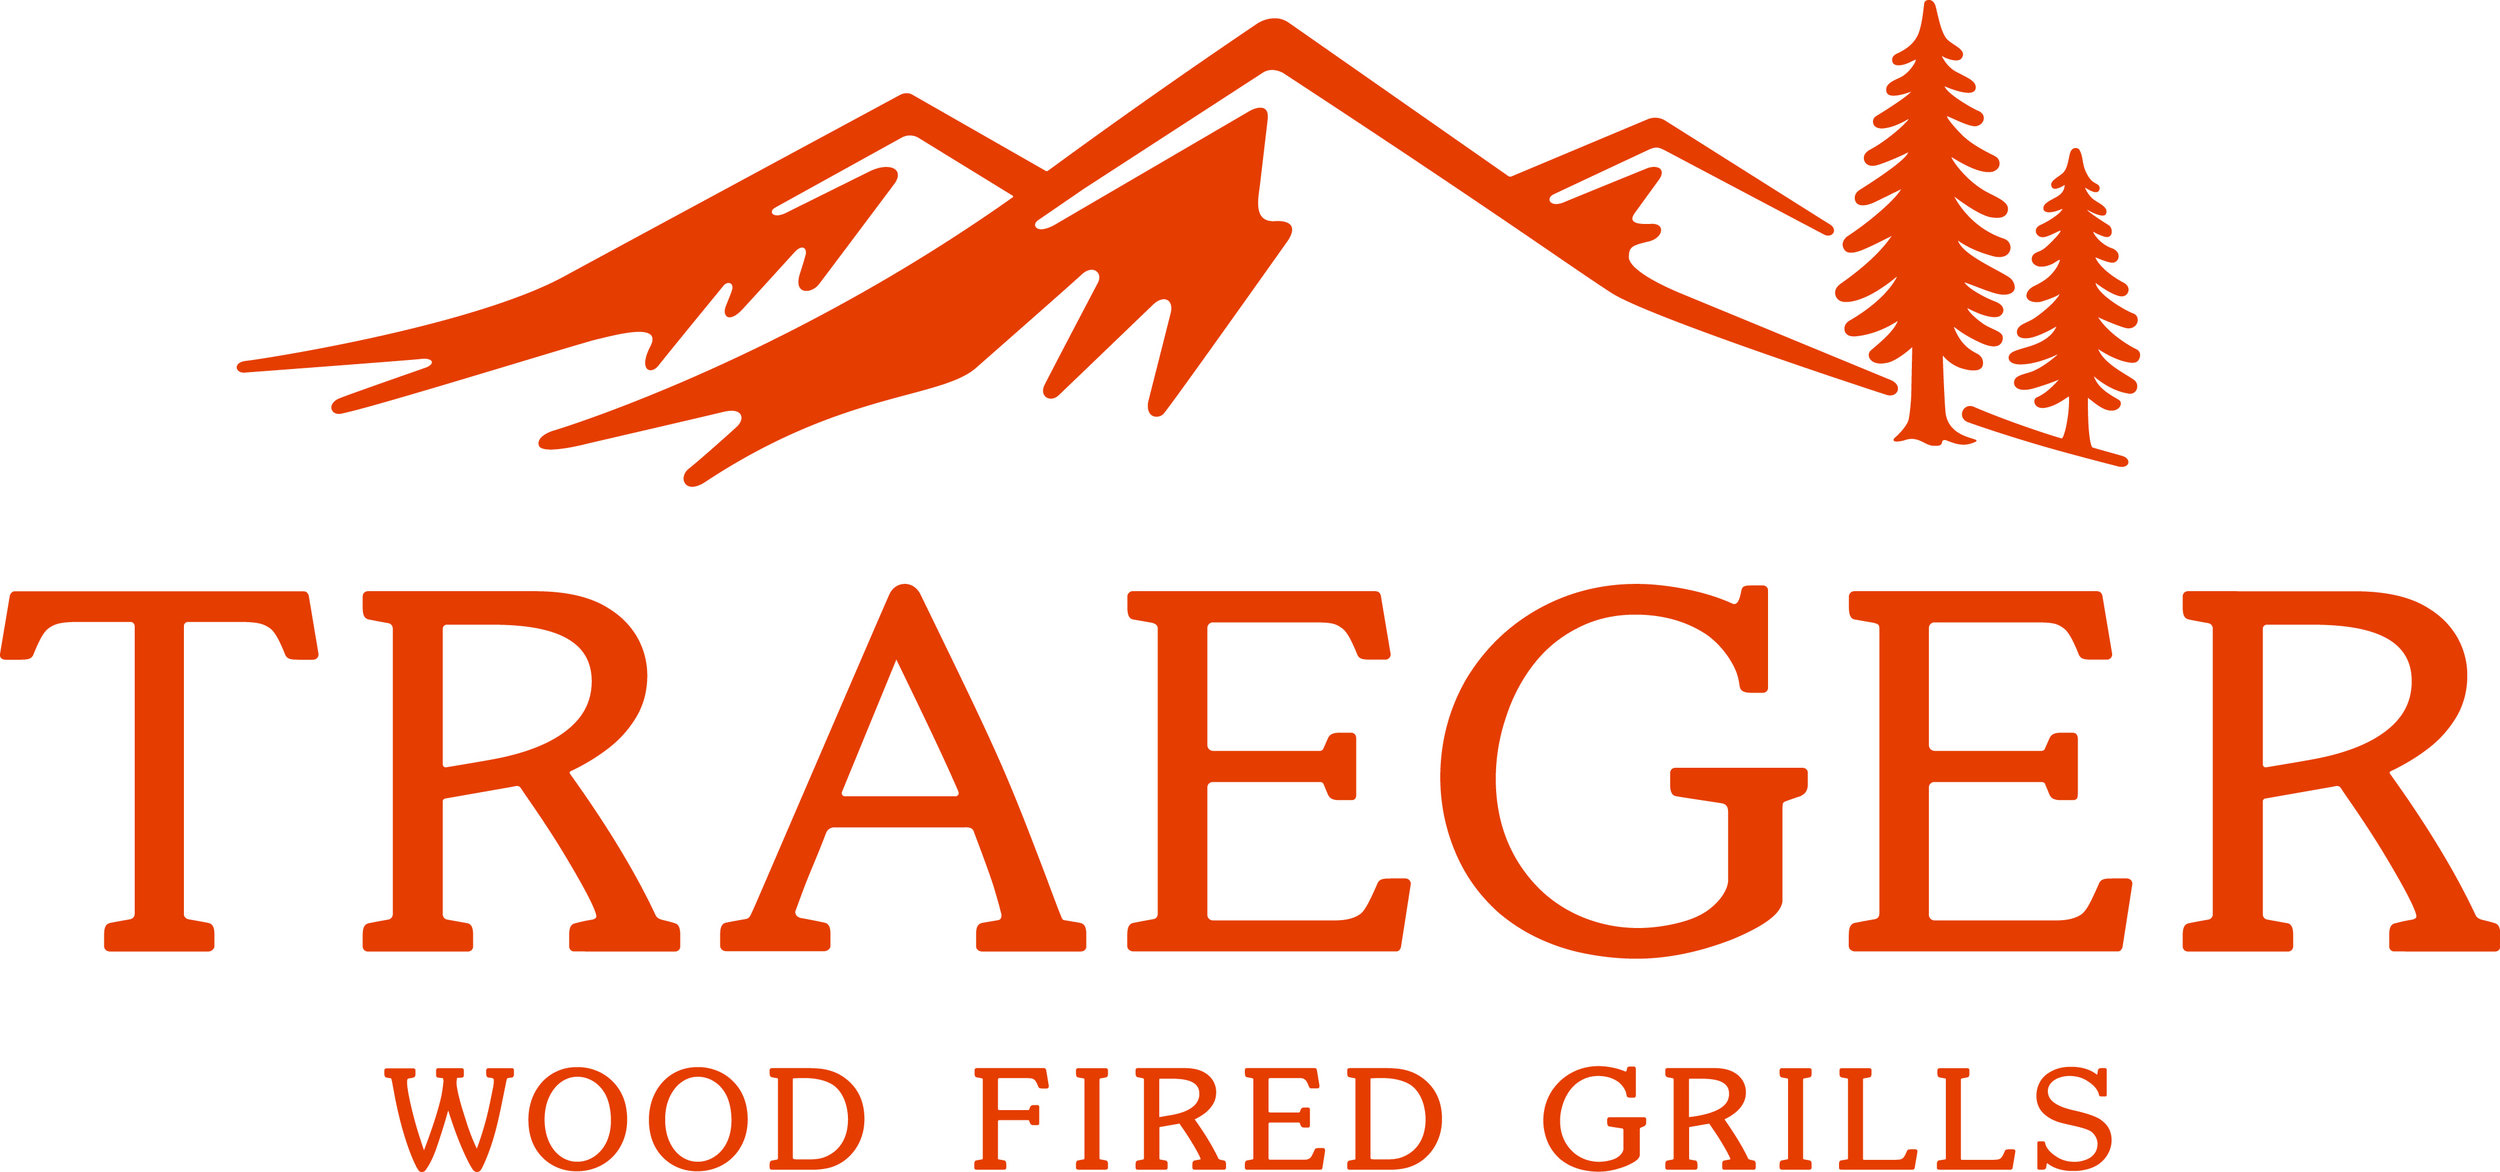 BF-Logos_Traeger Logo Orange on White_Traeger.jpg